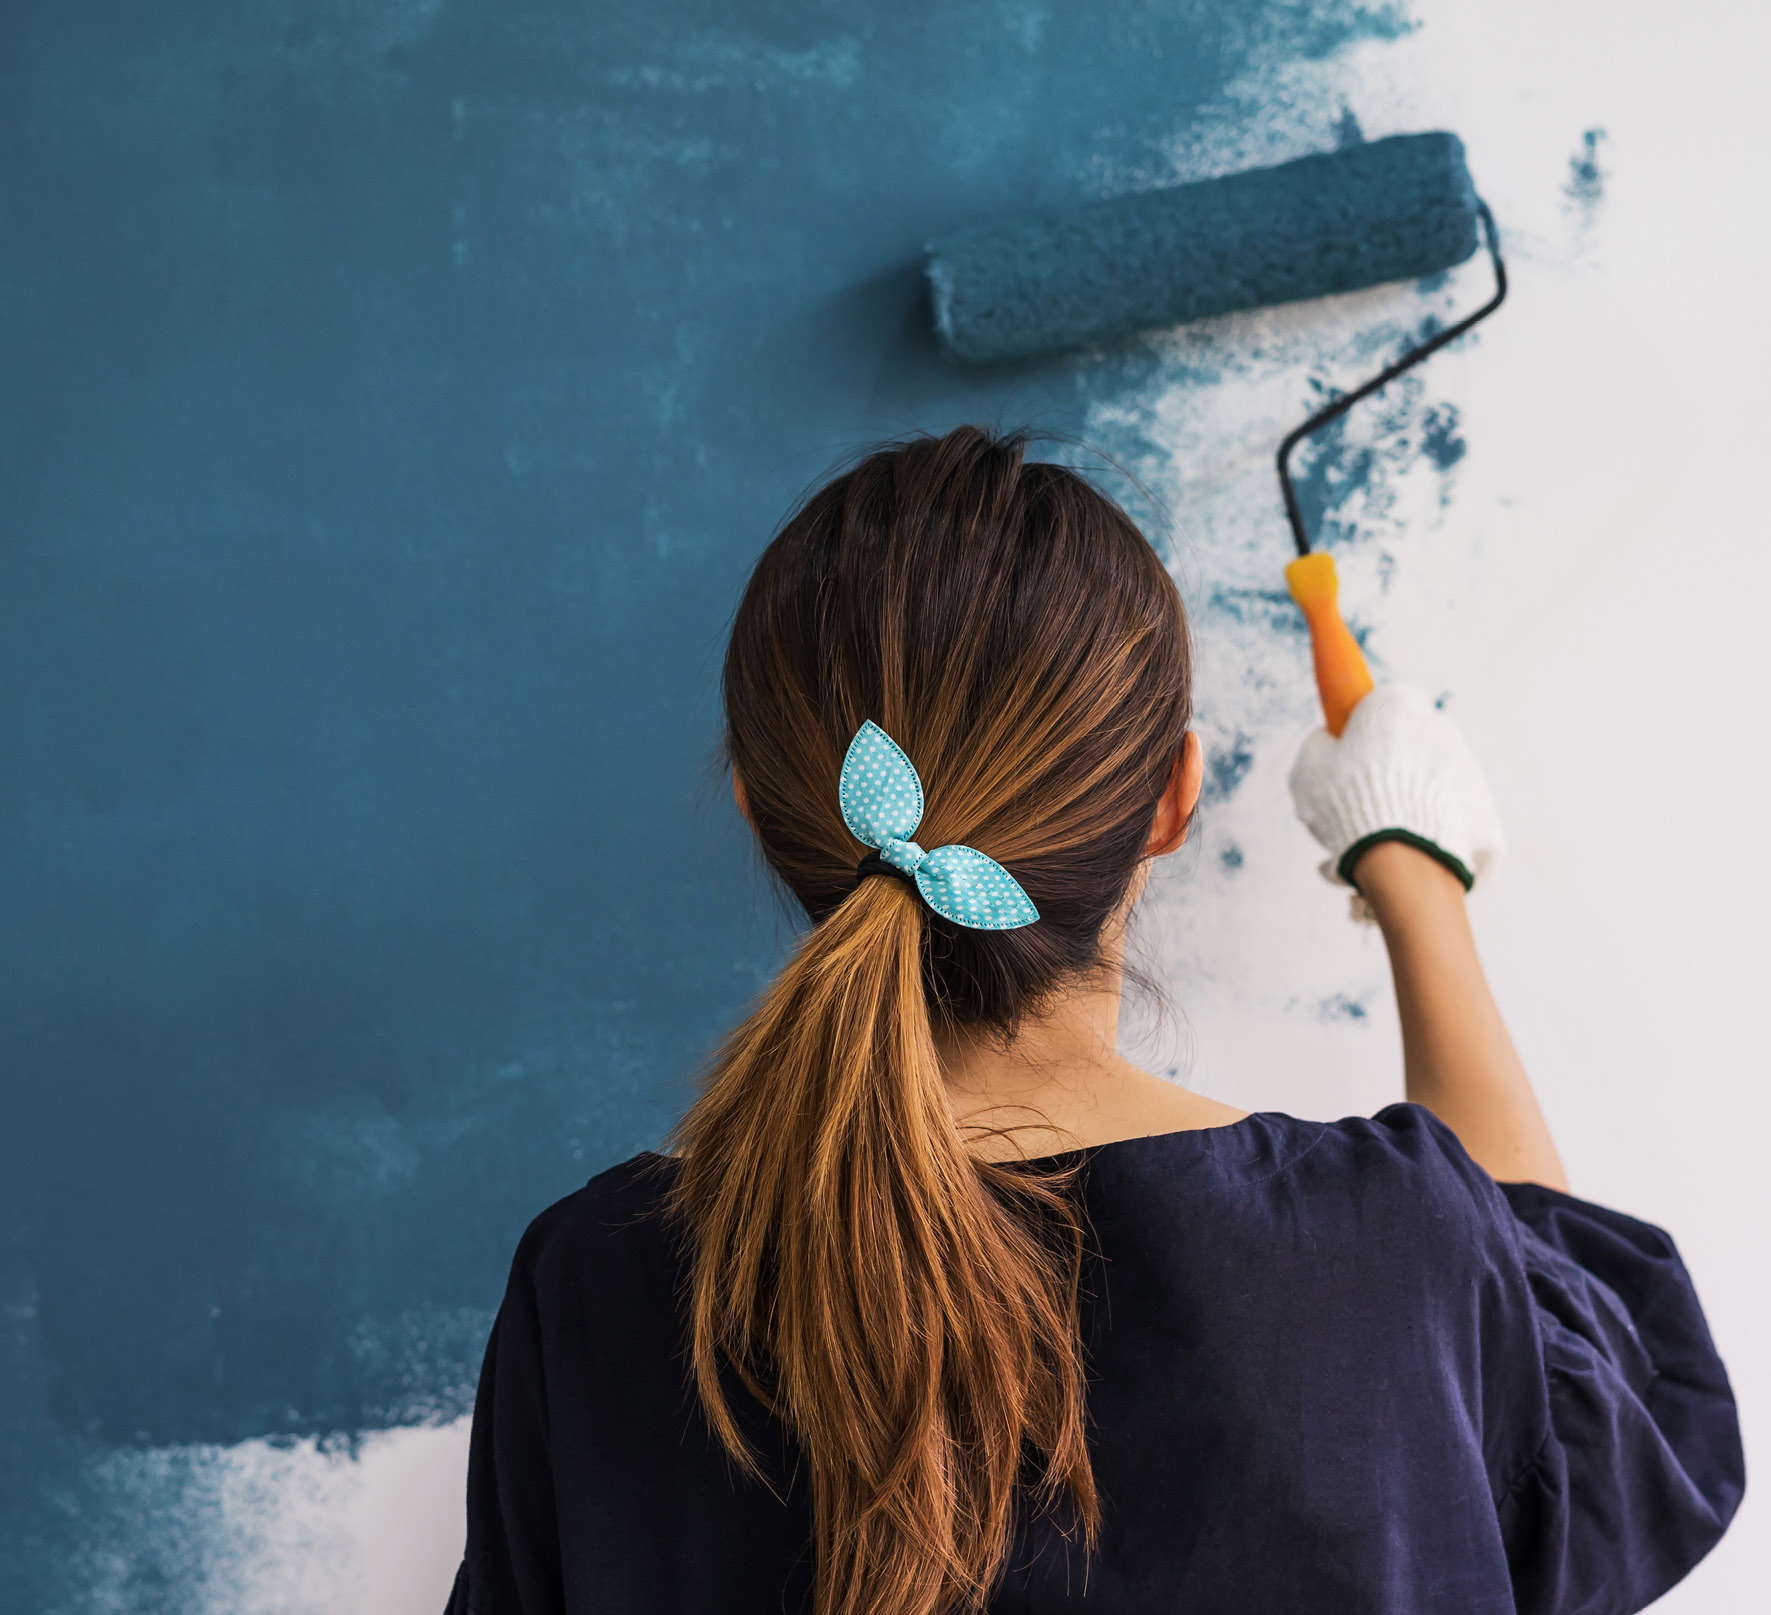 5 Ways to Make Home Improvements Affordable